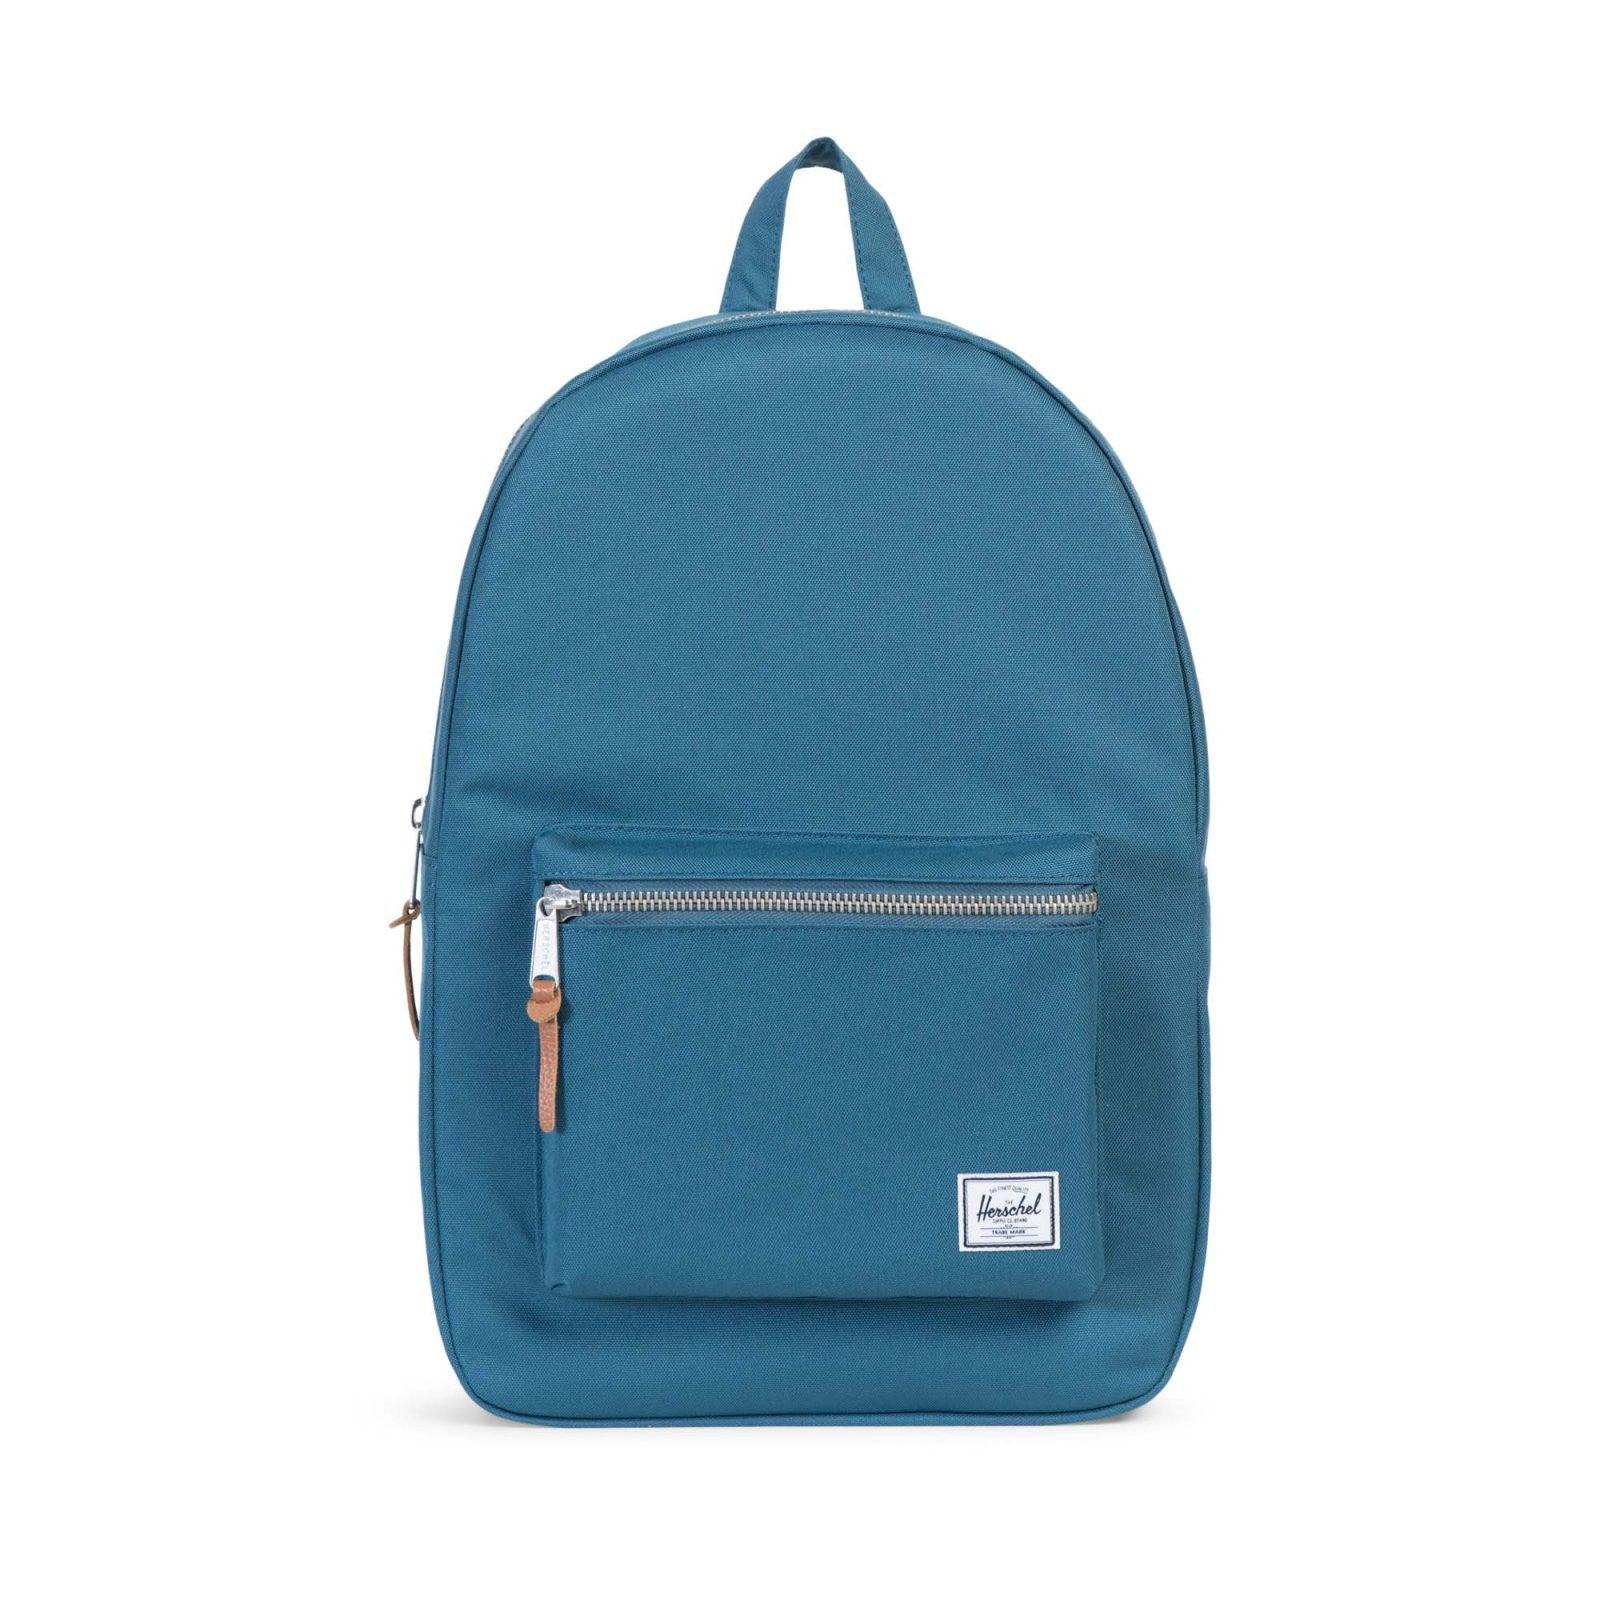 Herschel Supply Co. - Settlement Backpack, Indian Teal - The Giant Peach - 1